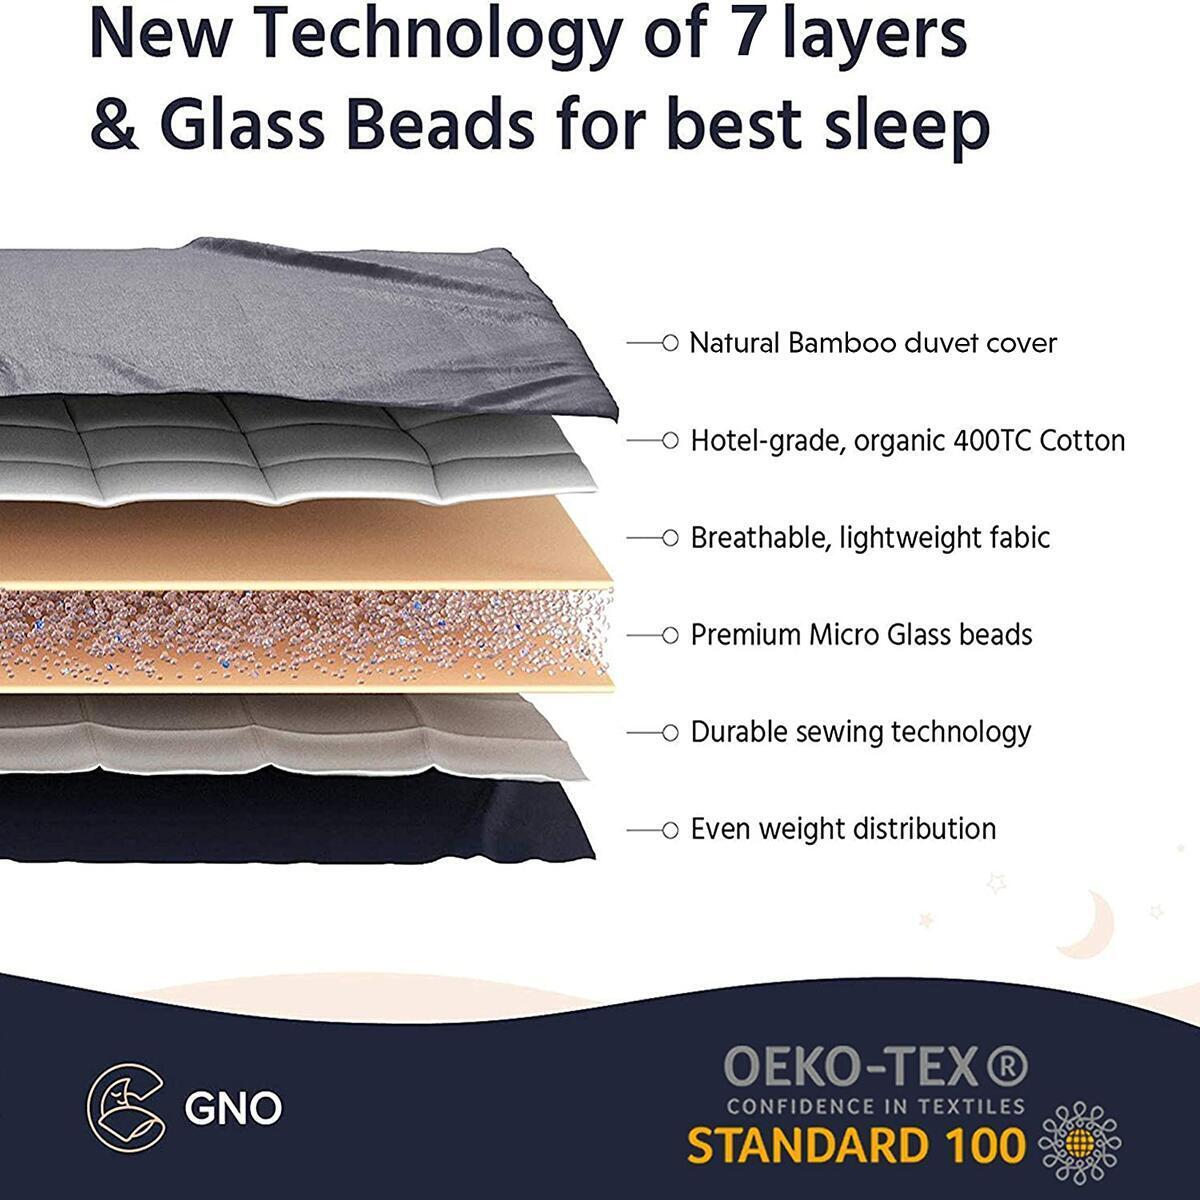 GnO Premium Adult Weighted Blanket & Removable Bamboo Cover - (12 Lbs - 48''x72'' Full Size) - 100% Oeko Tex Certified Cooling Cotton & Glass Beads- Organic Heavy Blanket- Designed in USA - Dark Grey